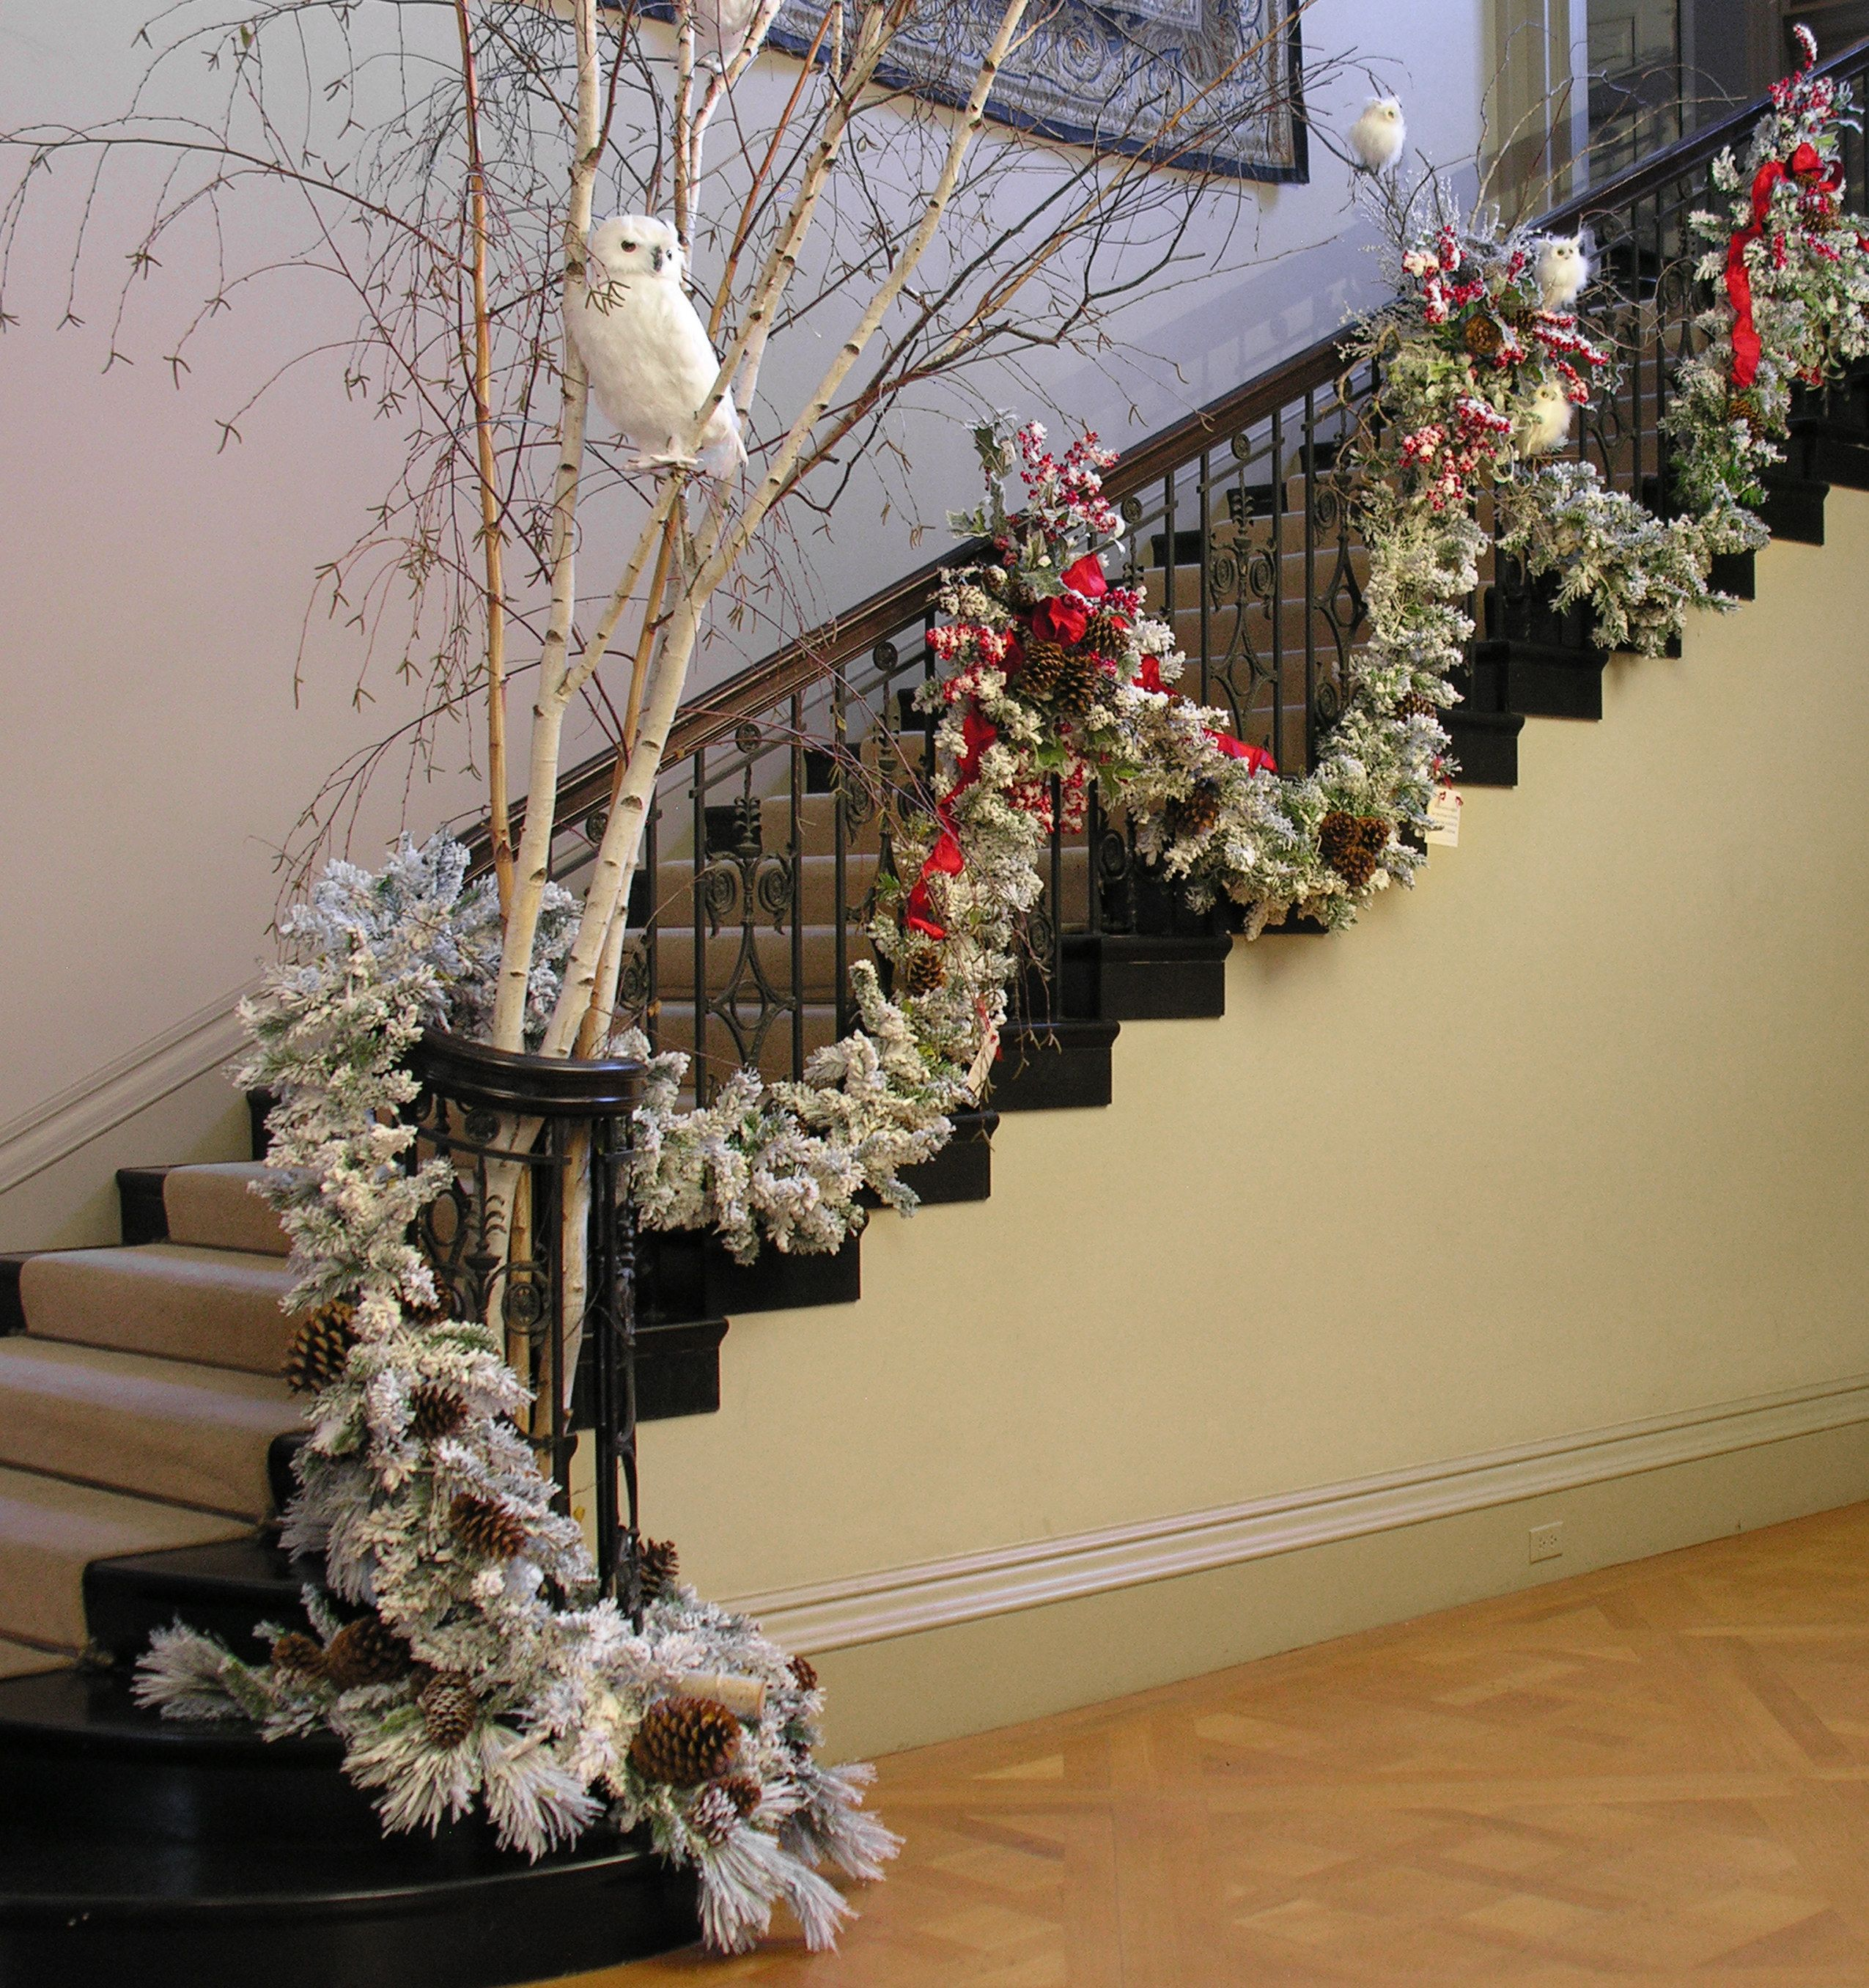 Christmas Decorations For Victorian Homes: See How America's Historic Homes Celebrate The Holidays